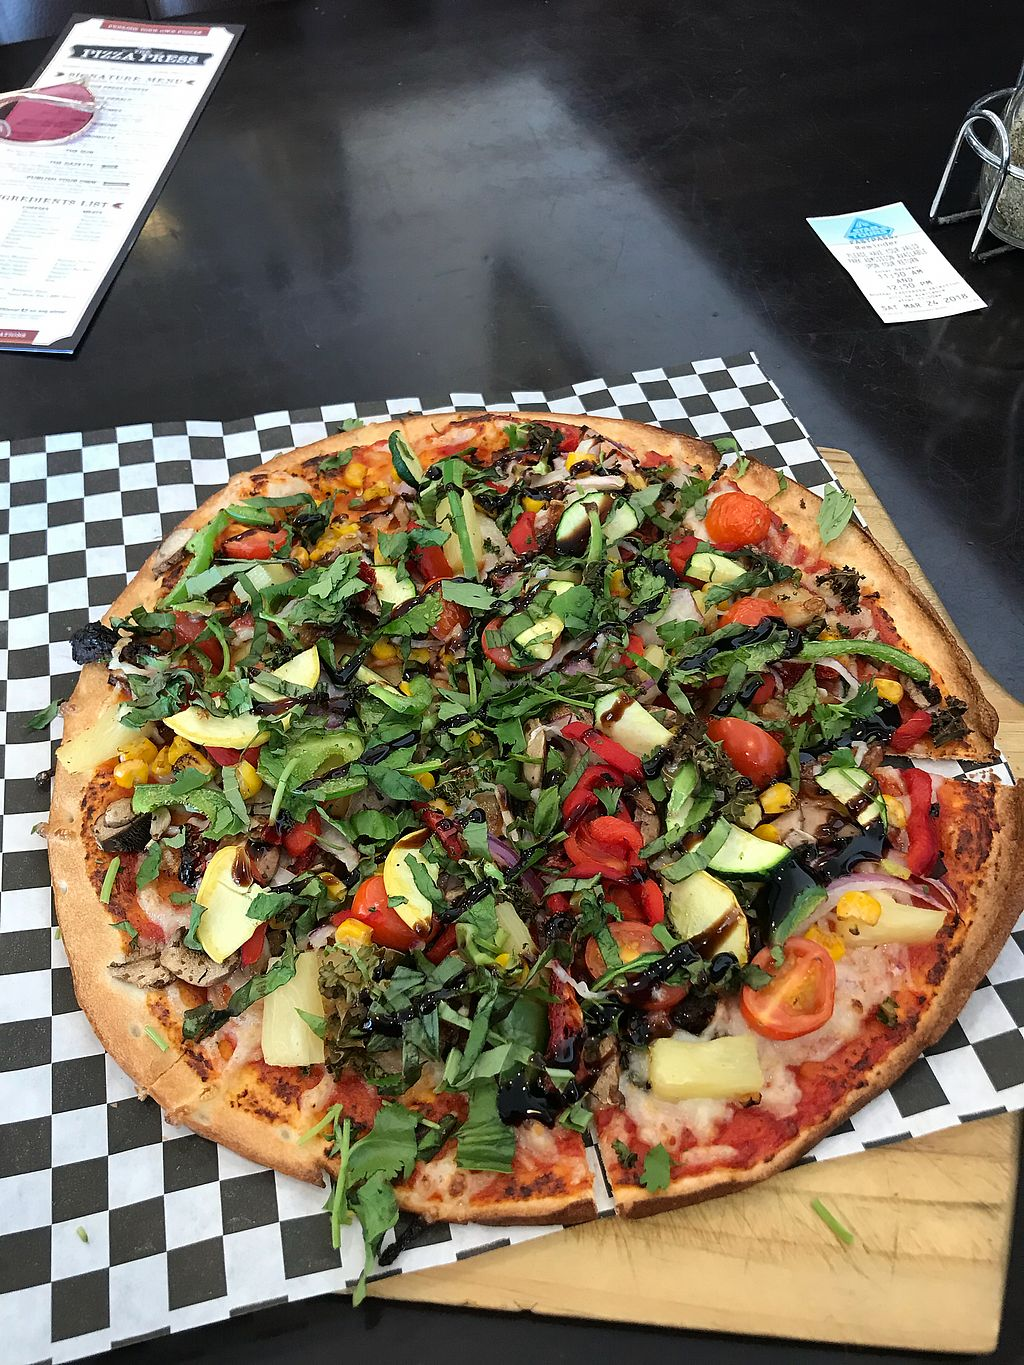 """Photo of The Pizza Press  by <a href=""""/members/profile/Charlottegrowns"""">Charlottegrowns</a> <br/>Fantastic  <br/> March 25, 2018  - <a href='/contact/abuse/image/81876/375716'>Report</a>"""